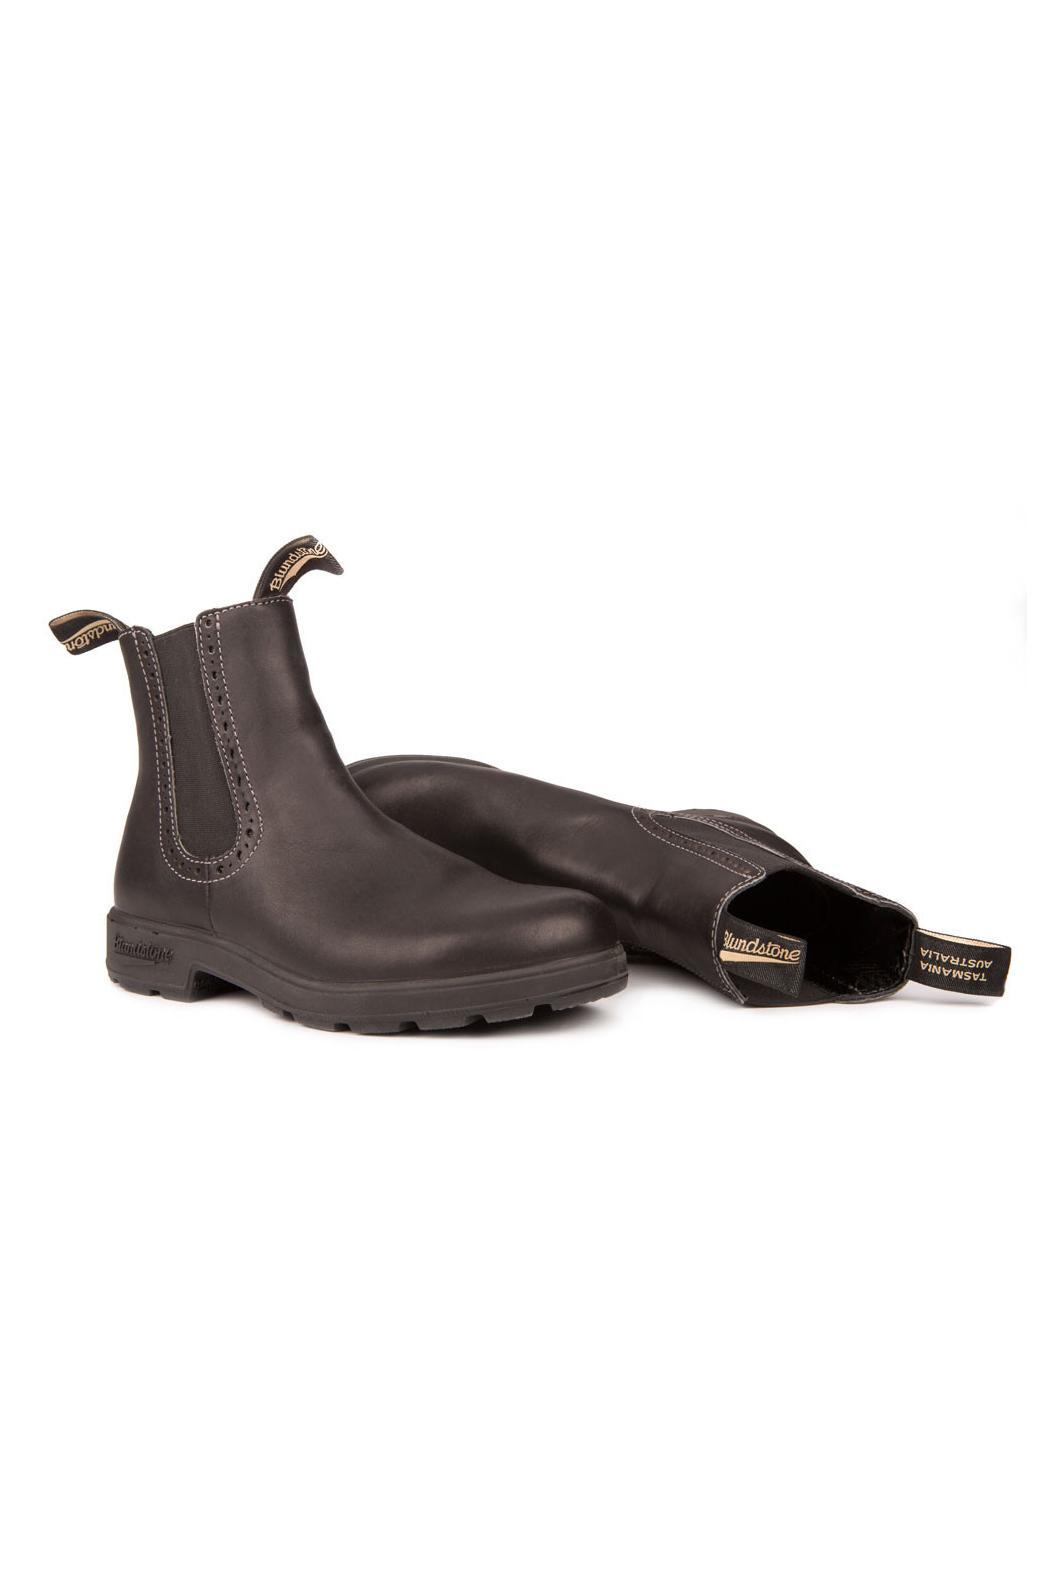 Blundstone  Girlfriend 1448  Black Boot - Back Cropped Image